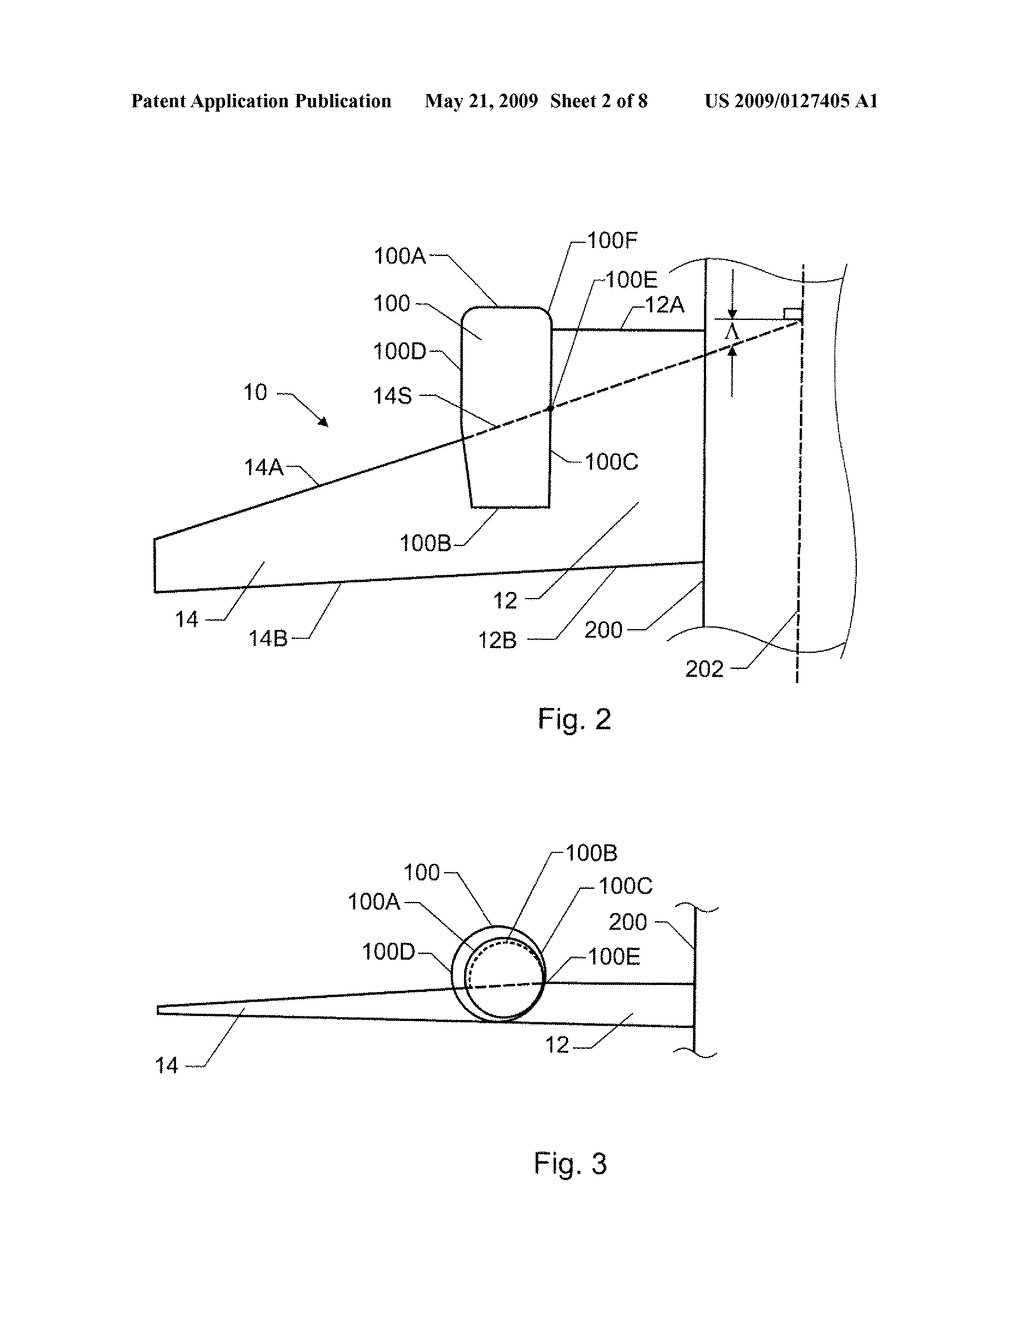 Aircraft Wing For Over-the-Wing Mounting Of Engine Nacelle - diagram on aircraft inverter diagram, aircraft wire diagram, aircraft fuselage diagram, aircraft generator diagram, aircraft engine diagram, aircraft pylon diagram, aircraft aileron diagram, aircraft wing diagram, aircraft propeller diagram, aircraft rudder diagram,